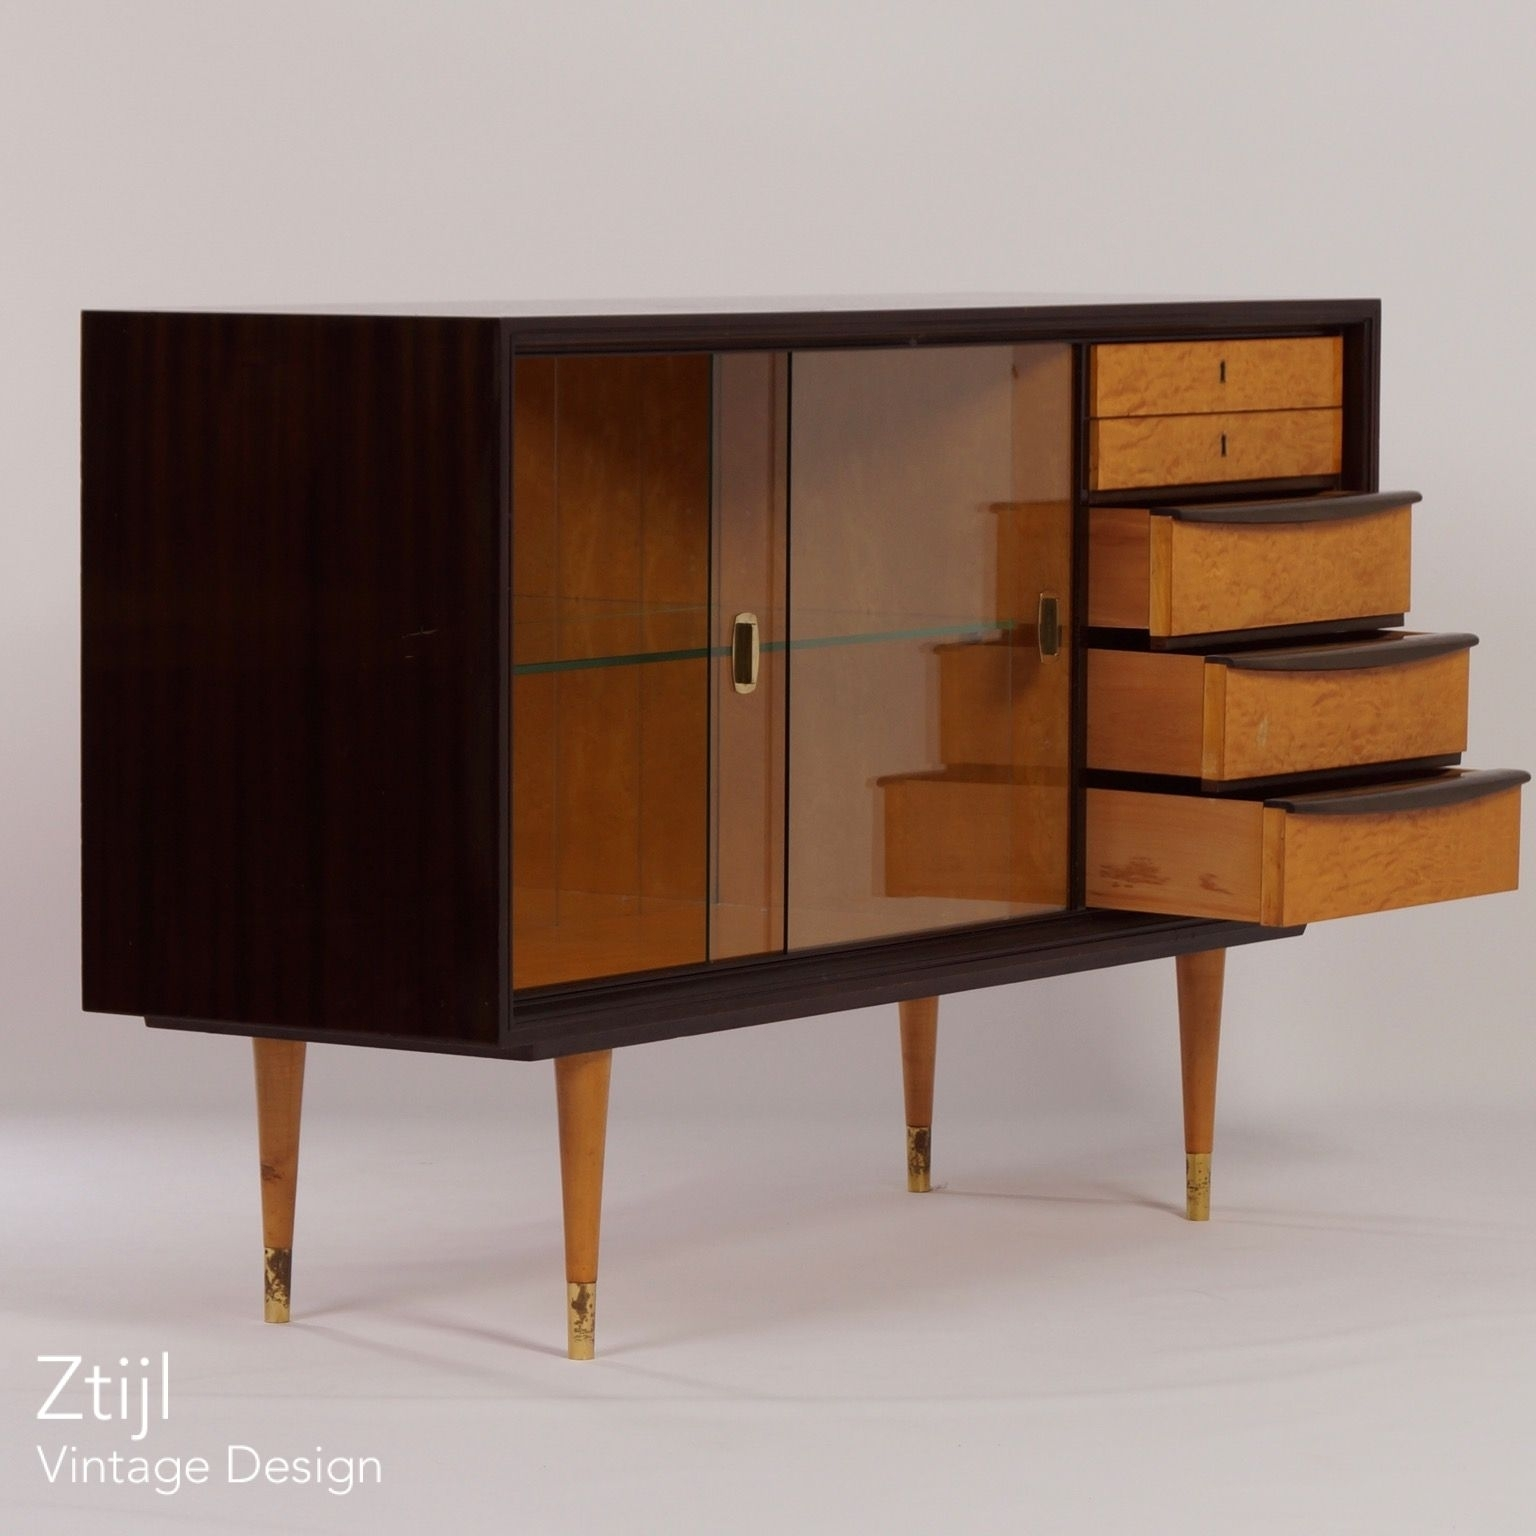 Mahogany Sideboard With Showcase And Brass Details, 1960s – Vintage Inside Most Up To Date Aged Brass Sideboards (View 10 of 20)